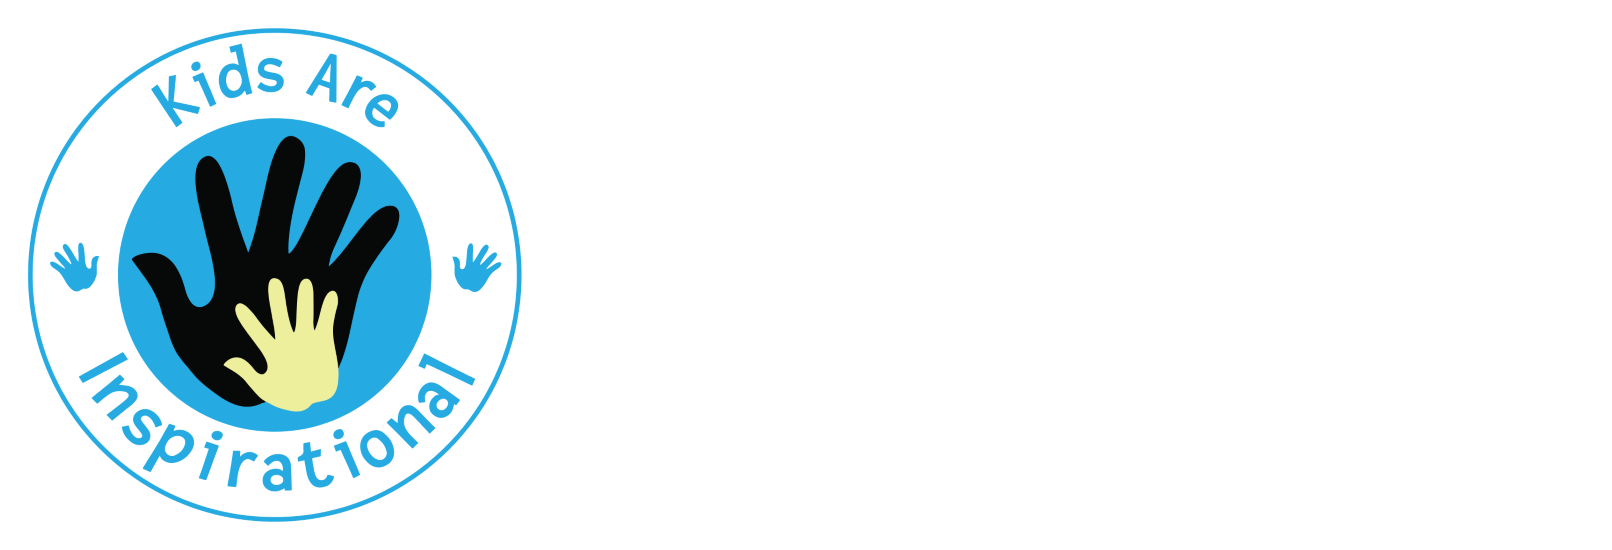 Kids Are Inspirational